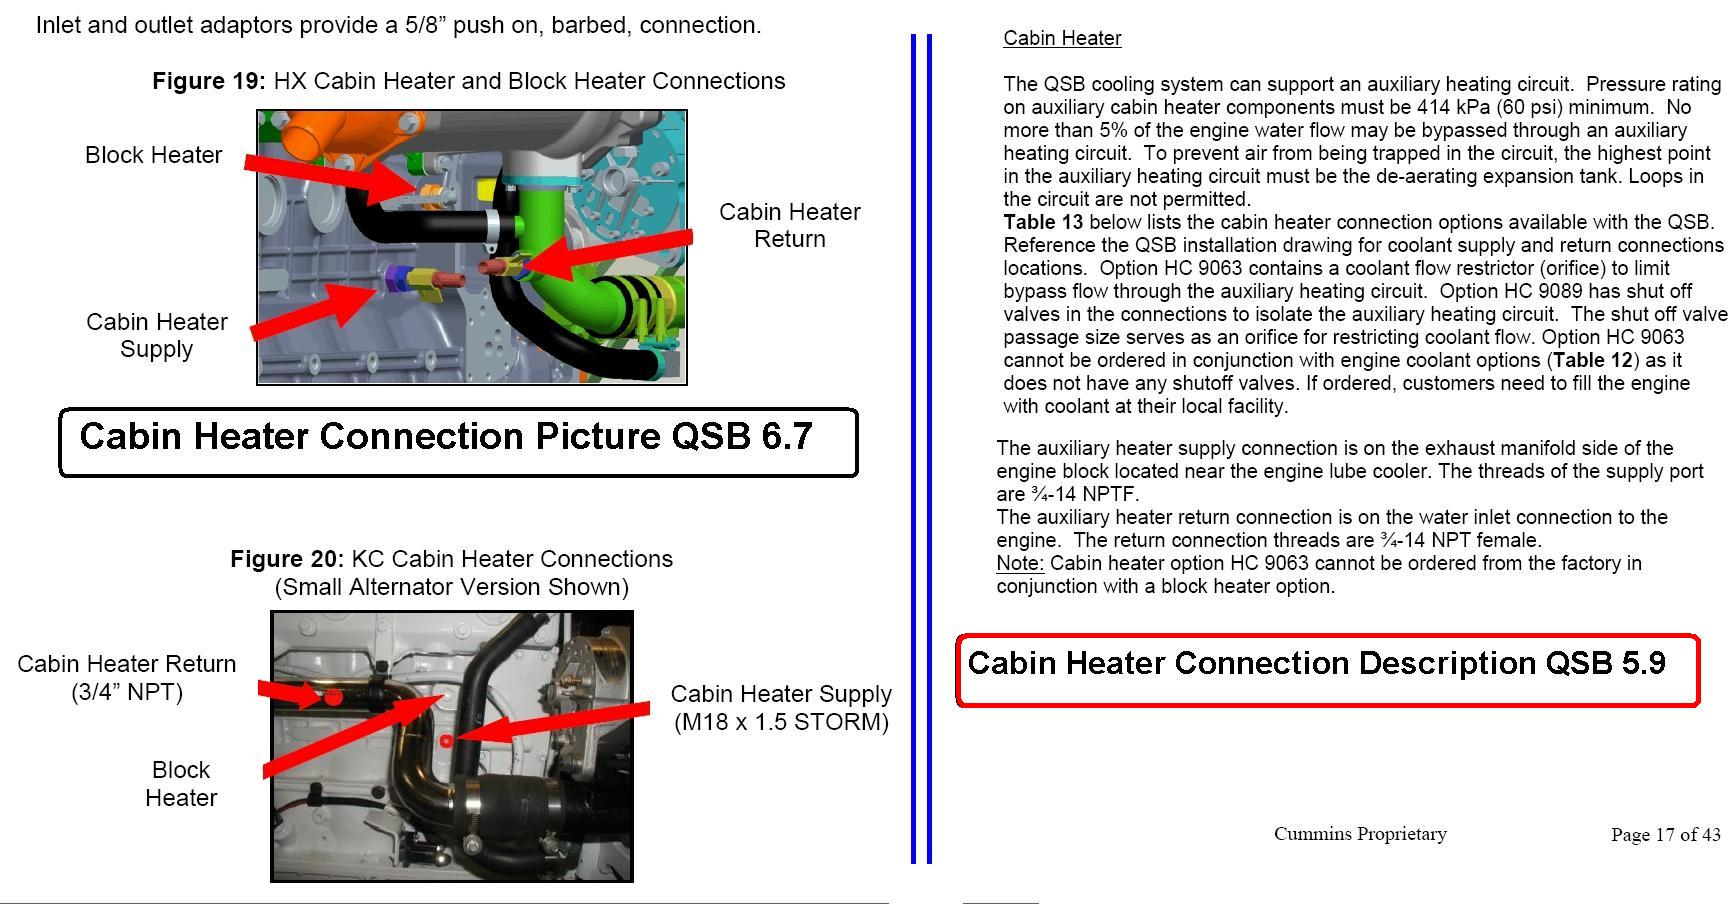 Cabin Heater Connection Ports for QSB 6.7 & QSB 5.9